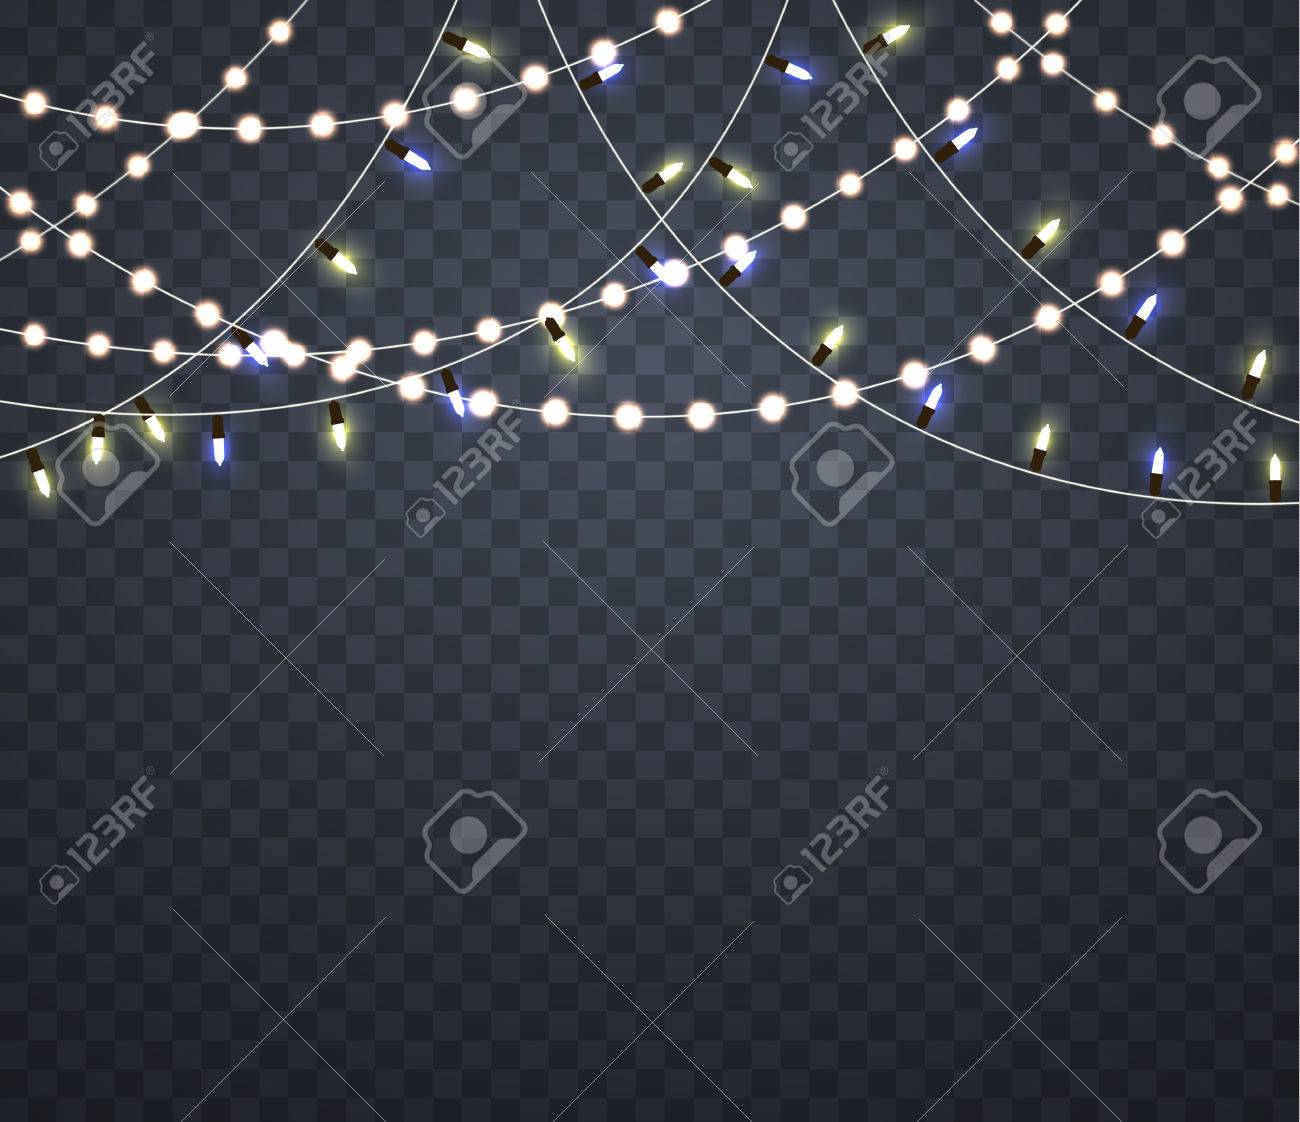 Light garlands. Isolated glowing lights on Christmas. - 67950713